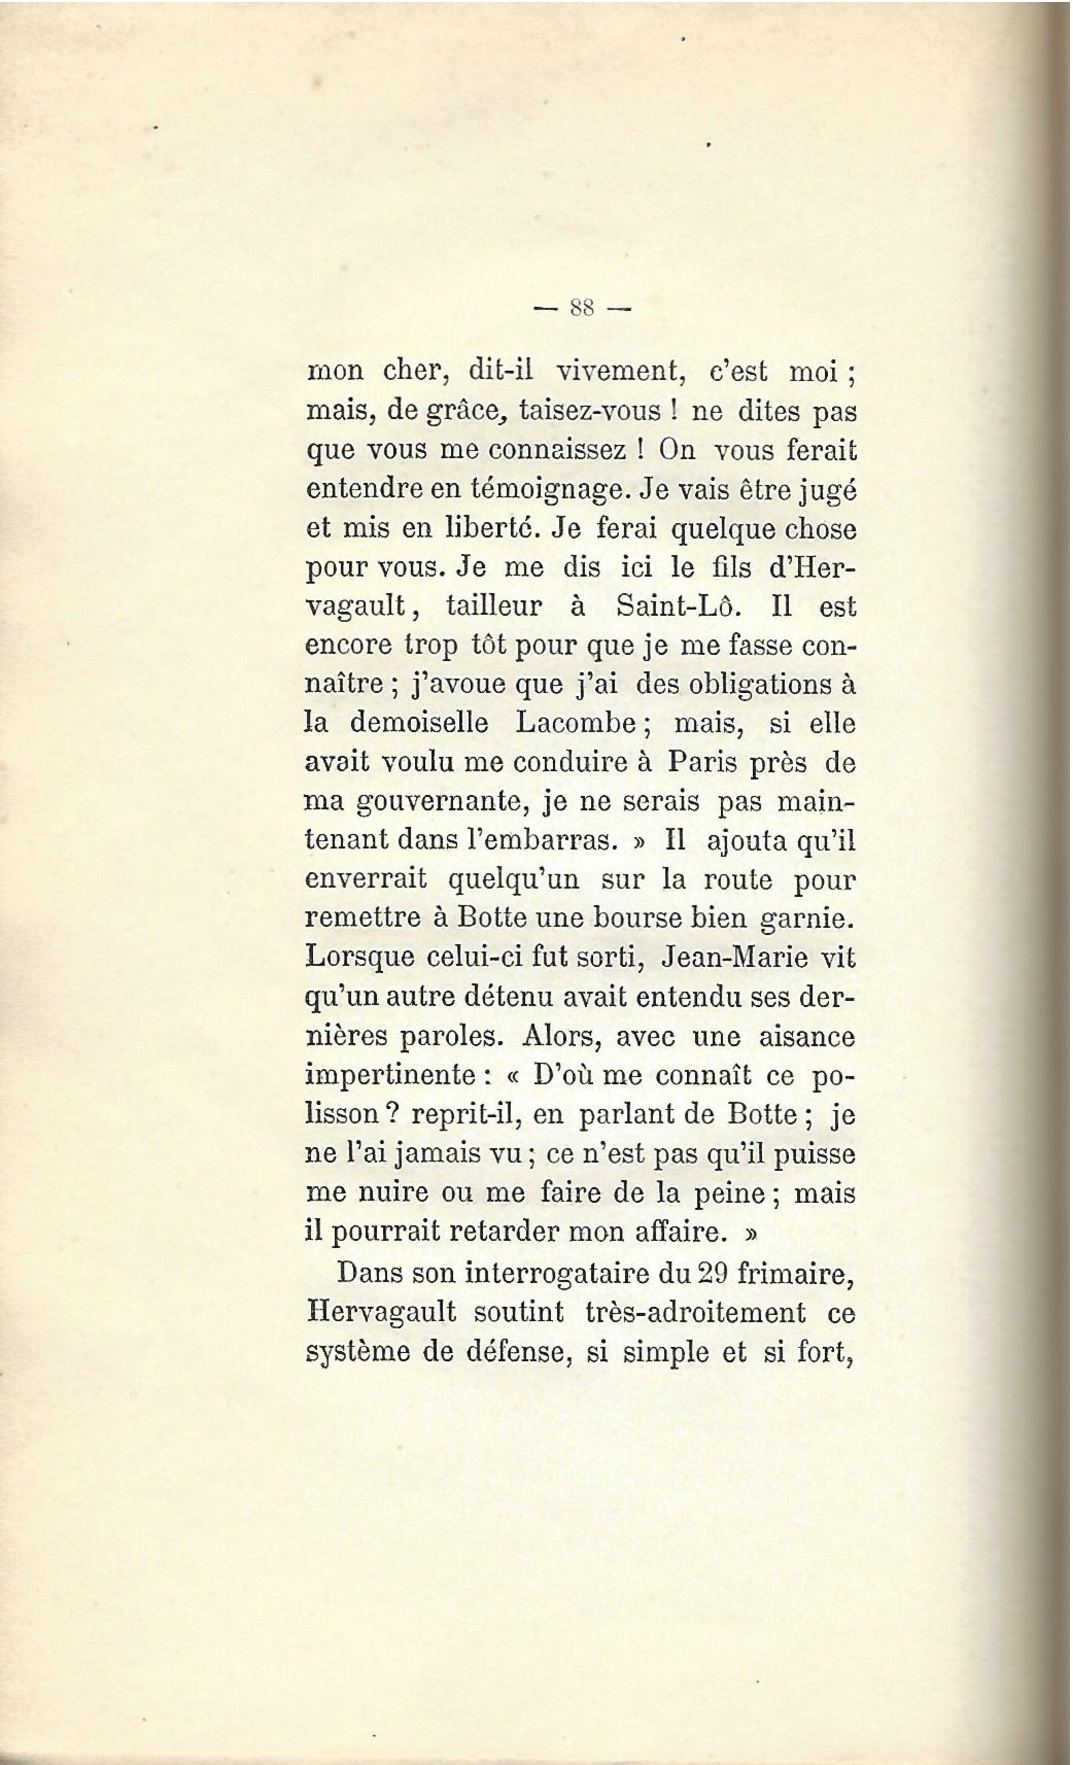 Page 88